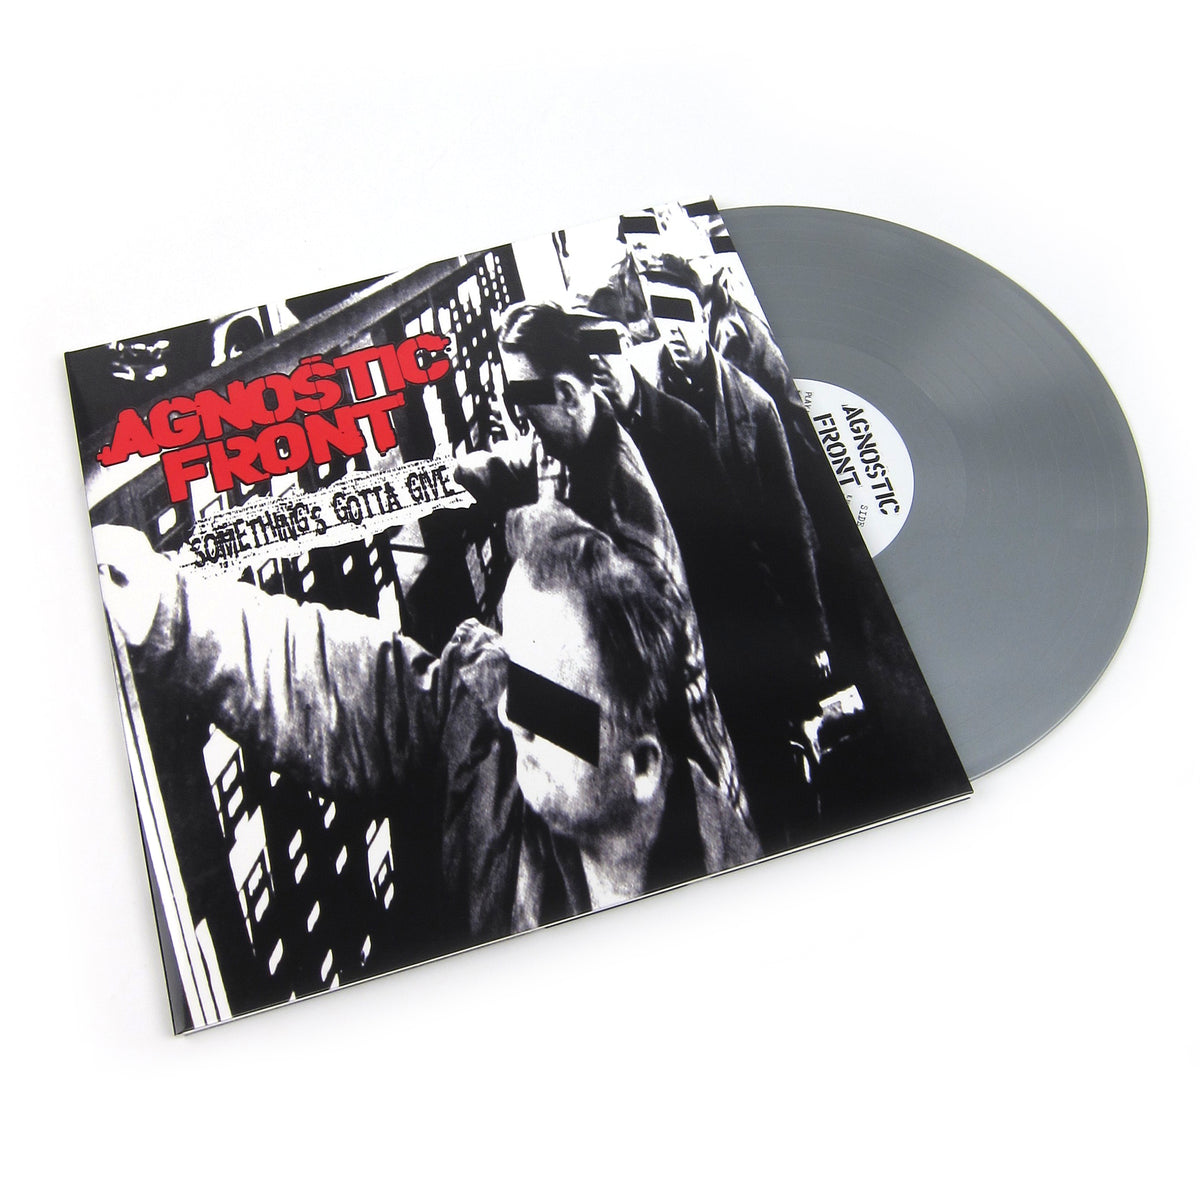 Agnostic Front: Something's Gotta Give (Colored Vinyl) Vinyl LP